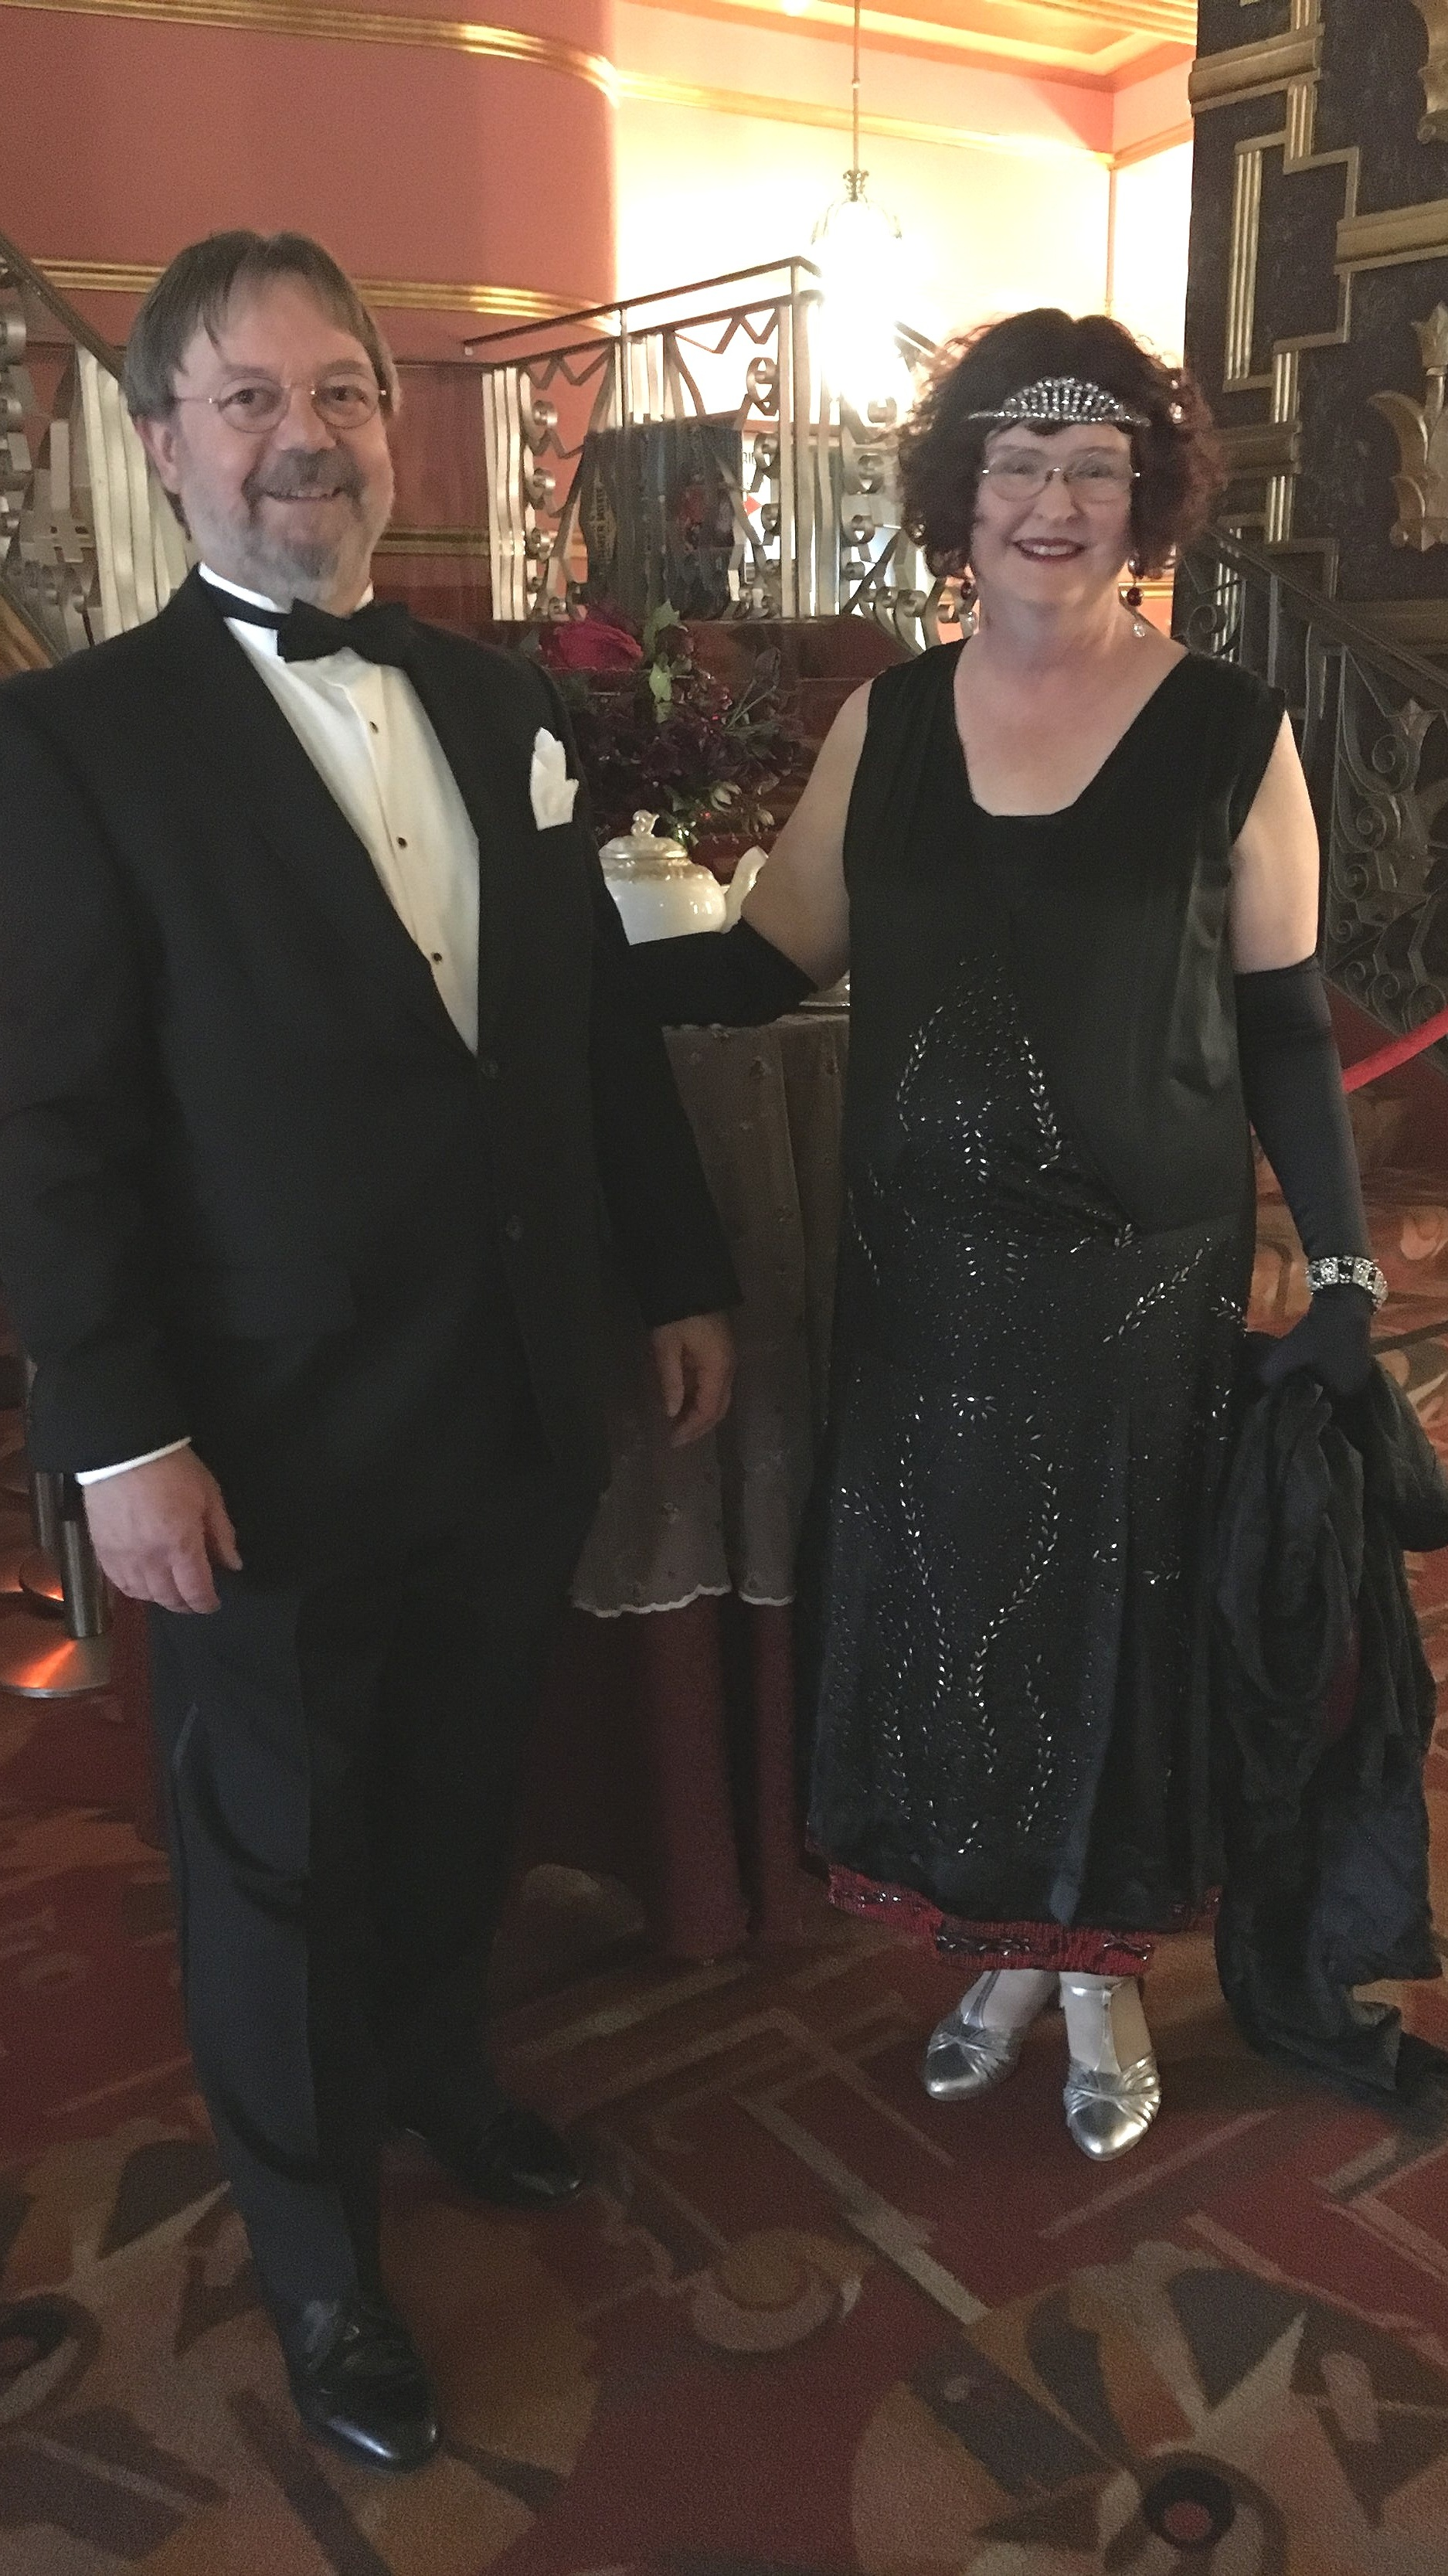 This is Frannie & Steven.  I see them at almost all the vintage events I go to, including Miss Fisher Con.  They are a fantastic couple who alway look spot on!